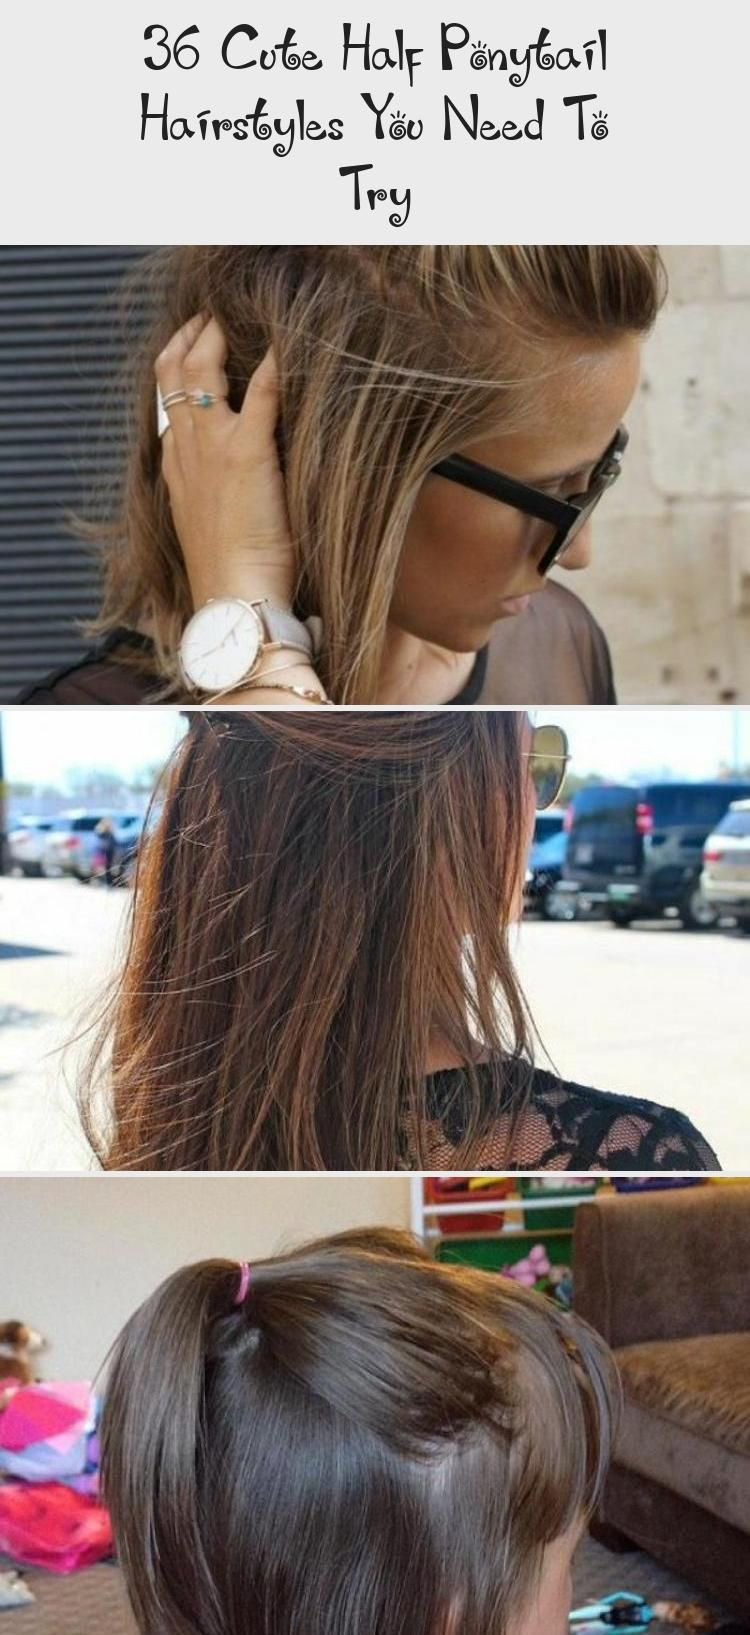 36 Cute Half Ponytail Hairstyles You Need To Try In 2020 Hair Styles Half Ponytail Try On Hairstyles